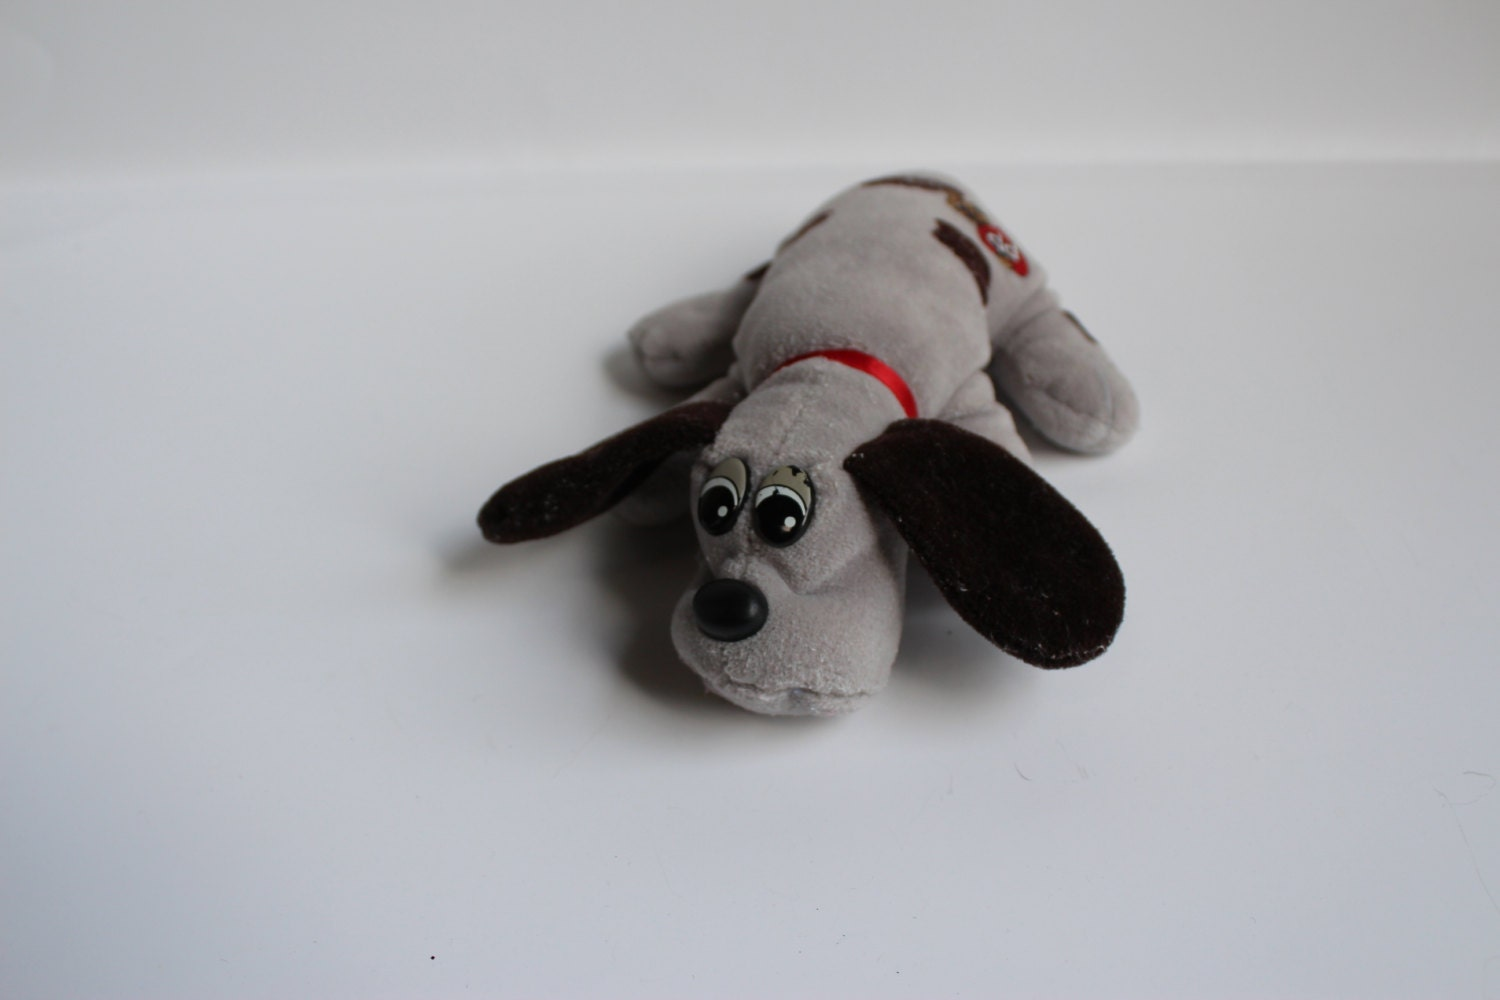 POUND PUPPY stuffed animal Vintage Stuffed Plush Grey with